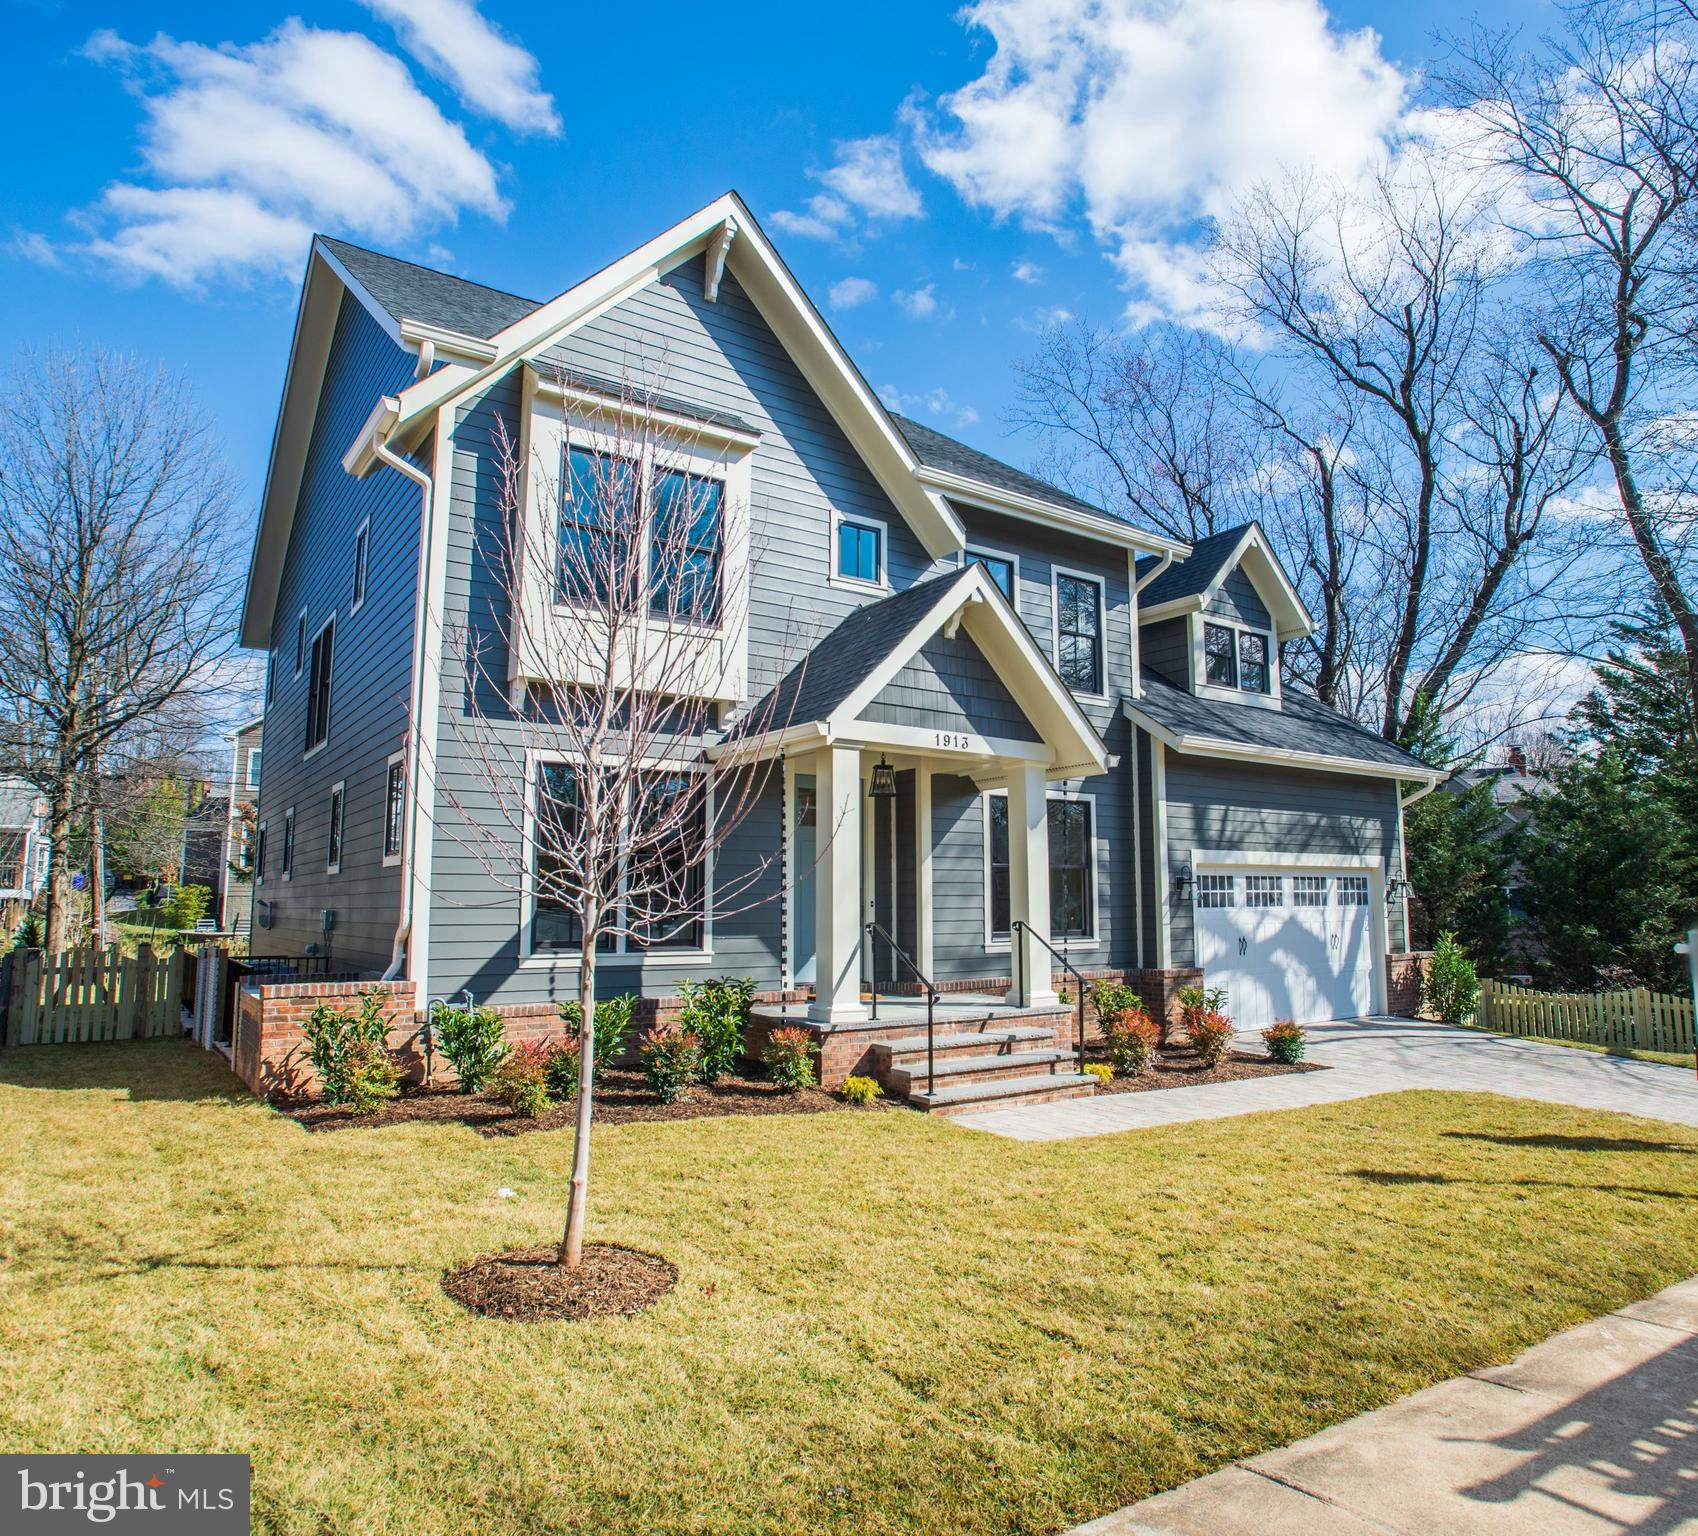 Open House on Sunday, February 23, from 1 to 4 pm to see quality construction, thoughtful details, and fine finishes in two new Spring Street homes scheduled for delivery in March 2020:***4856-33rd Road, N. - 4 levels with 5 bedrooms, 5.5 baths, and detached garage in the Rock Spring area.   Large level rear yard and walkable to parks and near shops and restaurants.  Jamestown, Williamsburg, Yorktown. ******5010-25th Road, N. - 5 bedrooms 4.5 bath with big, private rear yard and two car garage in the Garden City area.   Walk to shops, parks, restaurants, and services.  Discovery, Williamsburg, Yorktown.***